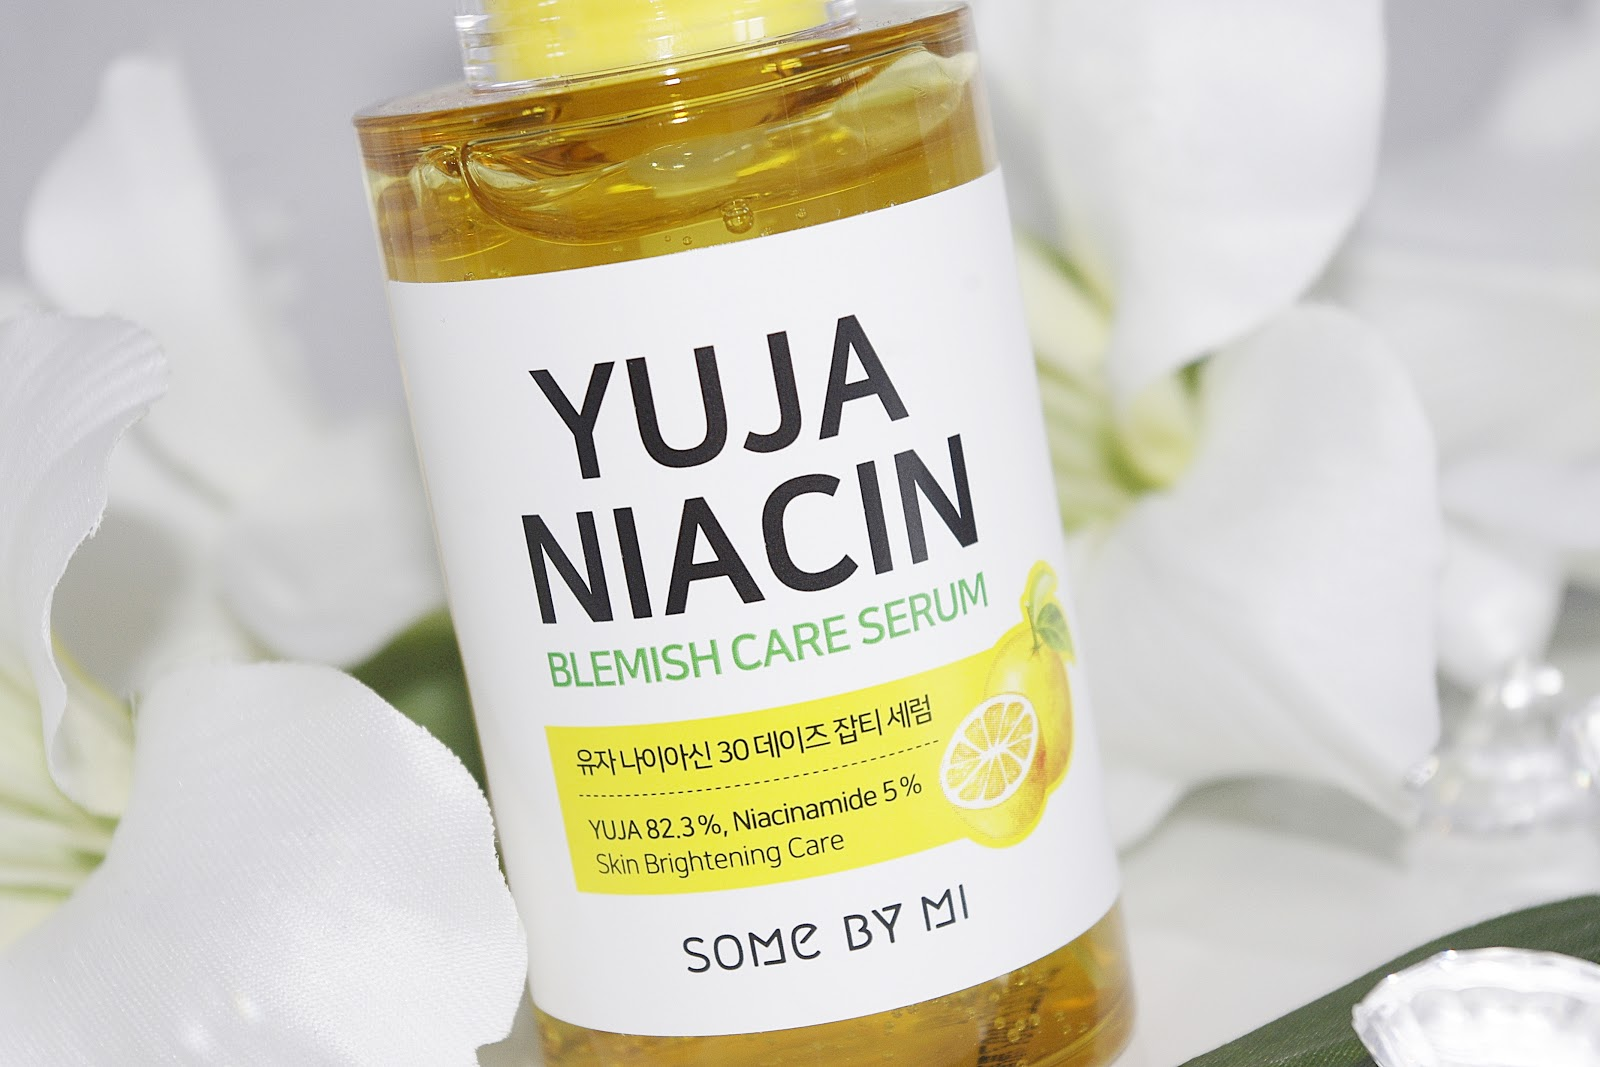 SOME BY MI Yuja Niacin 30 Days Blemish Care Serum